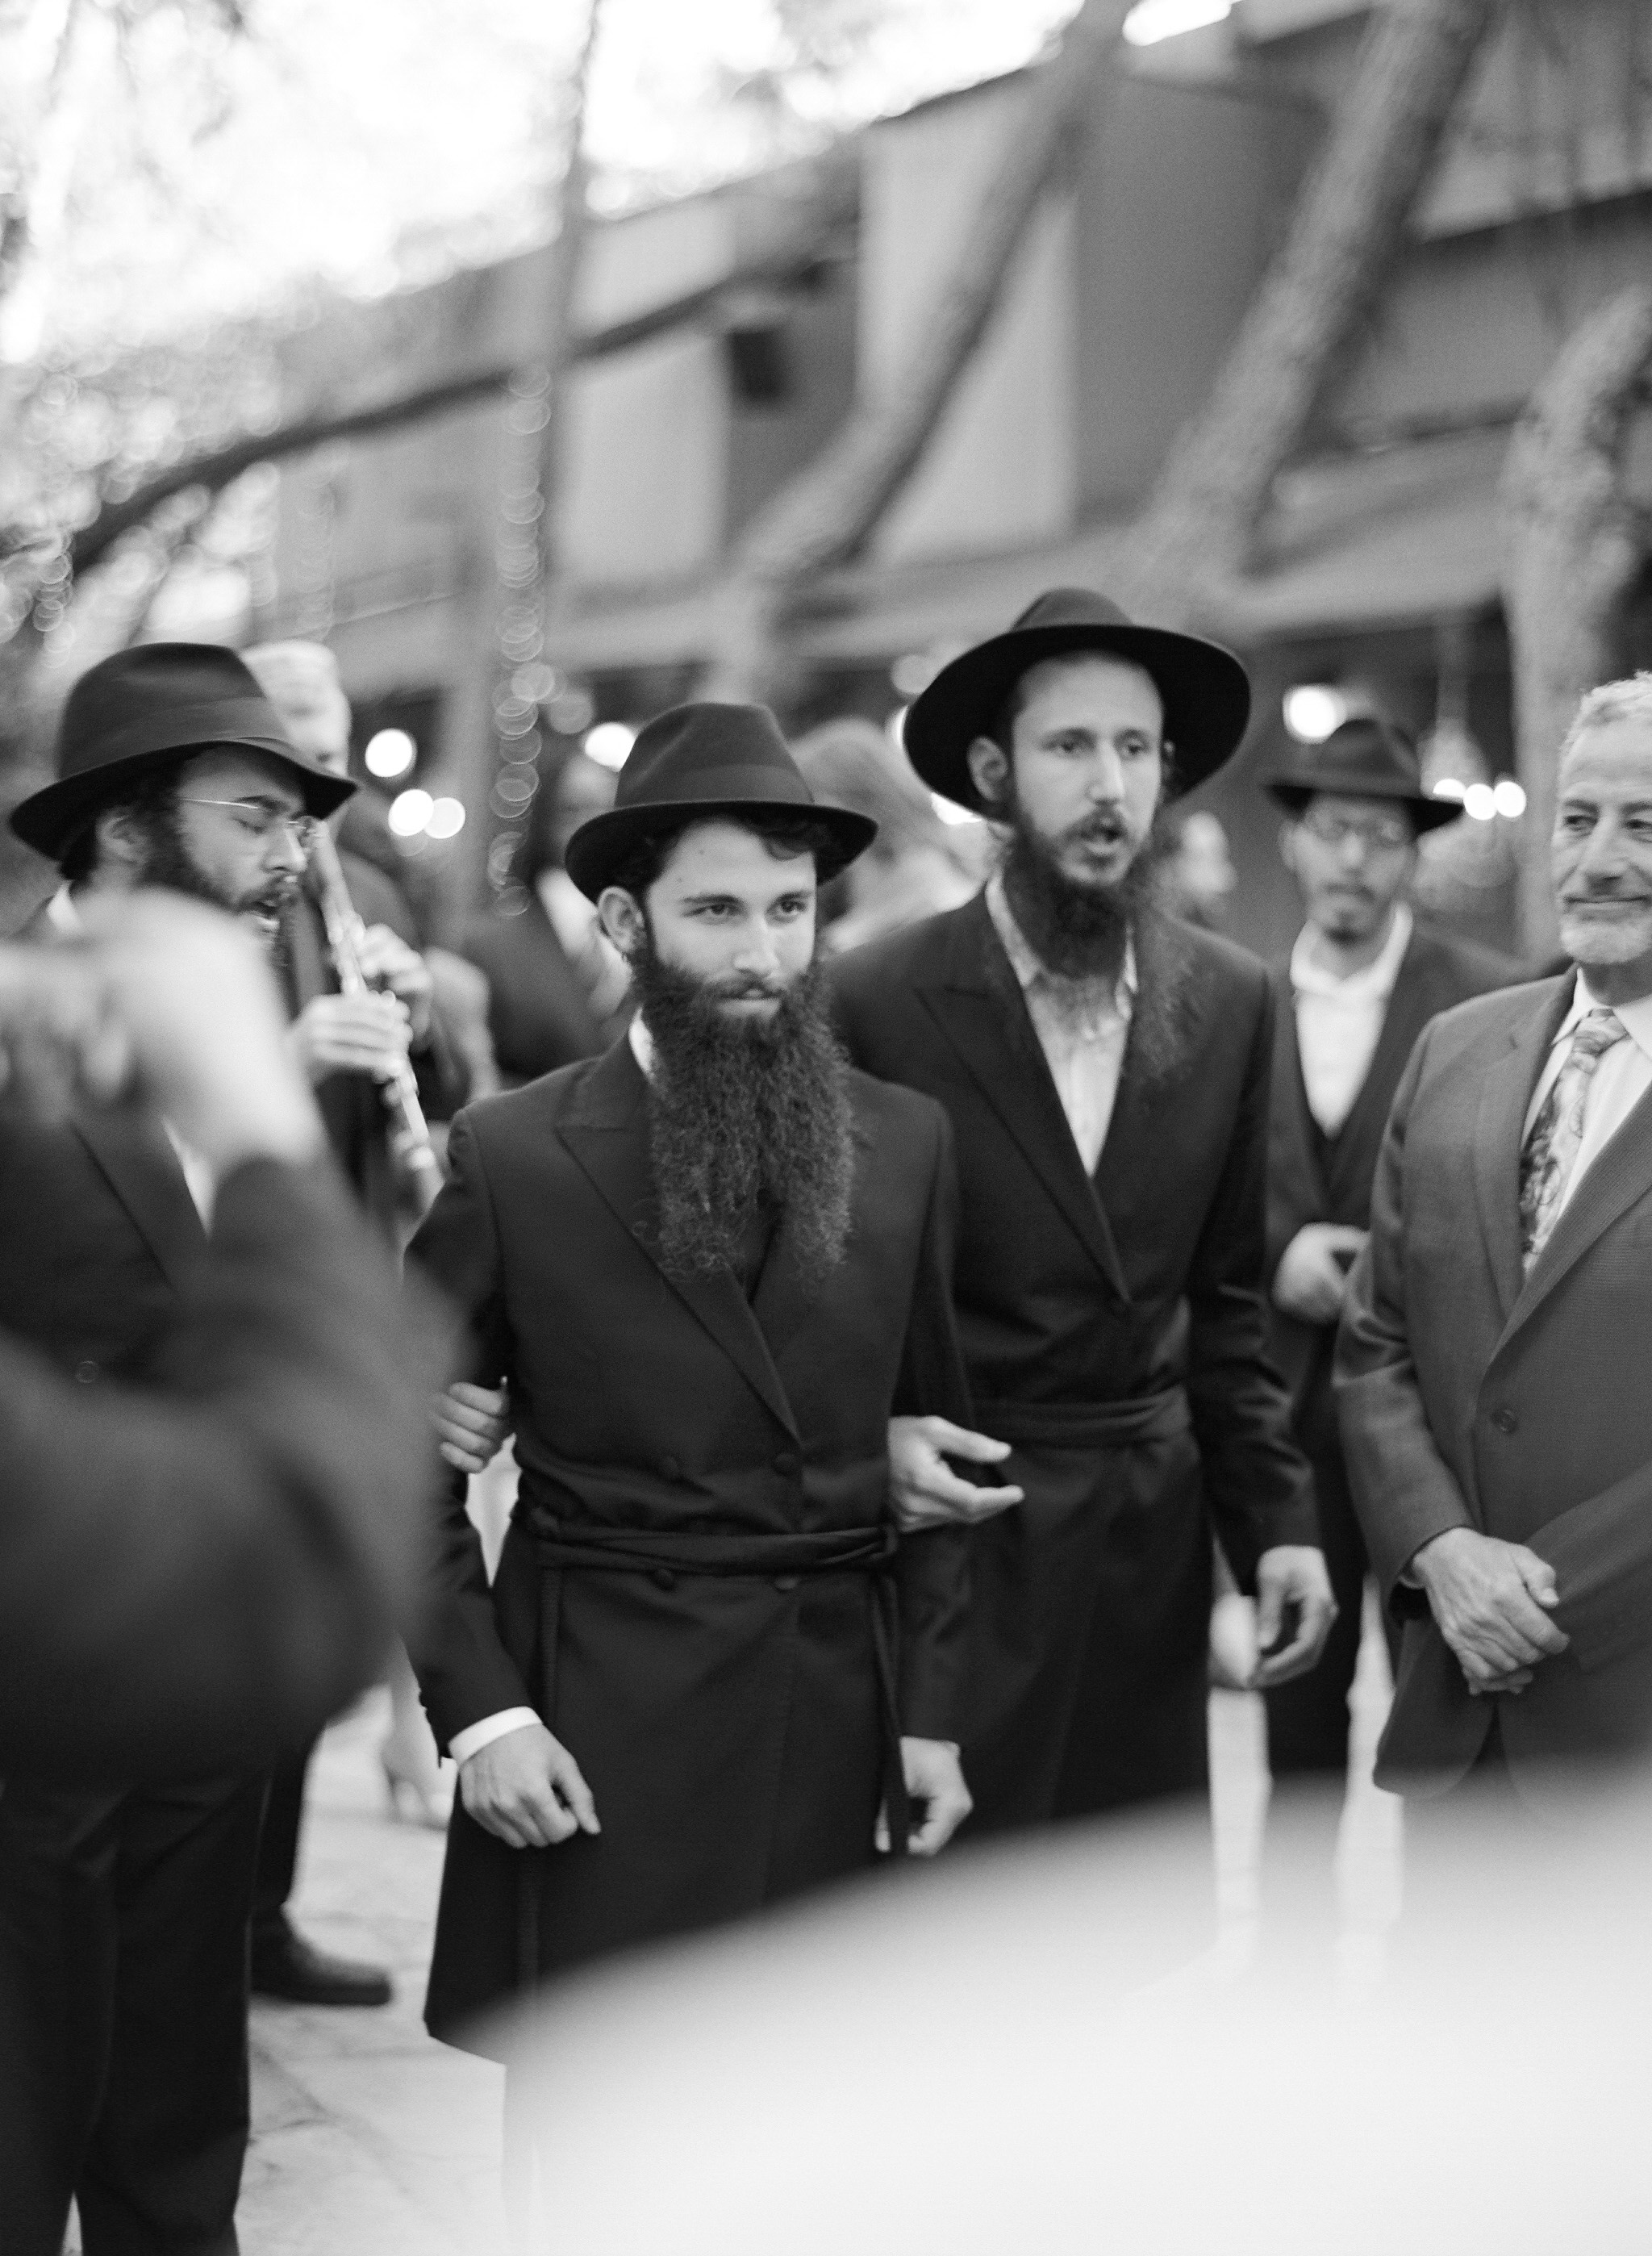 Destination Wedding Photographer Lexia Frank is a film photographer on the west coast specializing in luxury weddings and fine art film photography. In this article she writes a letter to the groom, and talks about the groom's role in photography. in this photo a groom is walked to the bedeken by his groomsmen in this orthodox jewish wedding at Callamigos Ranch Malibu Californiawww.lexiafrank.com